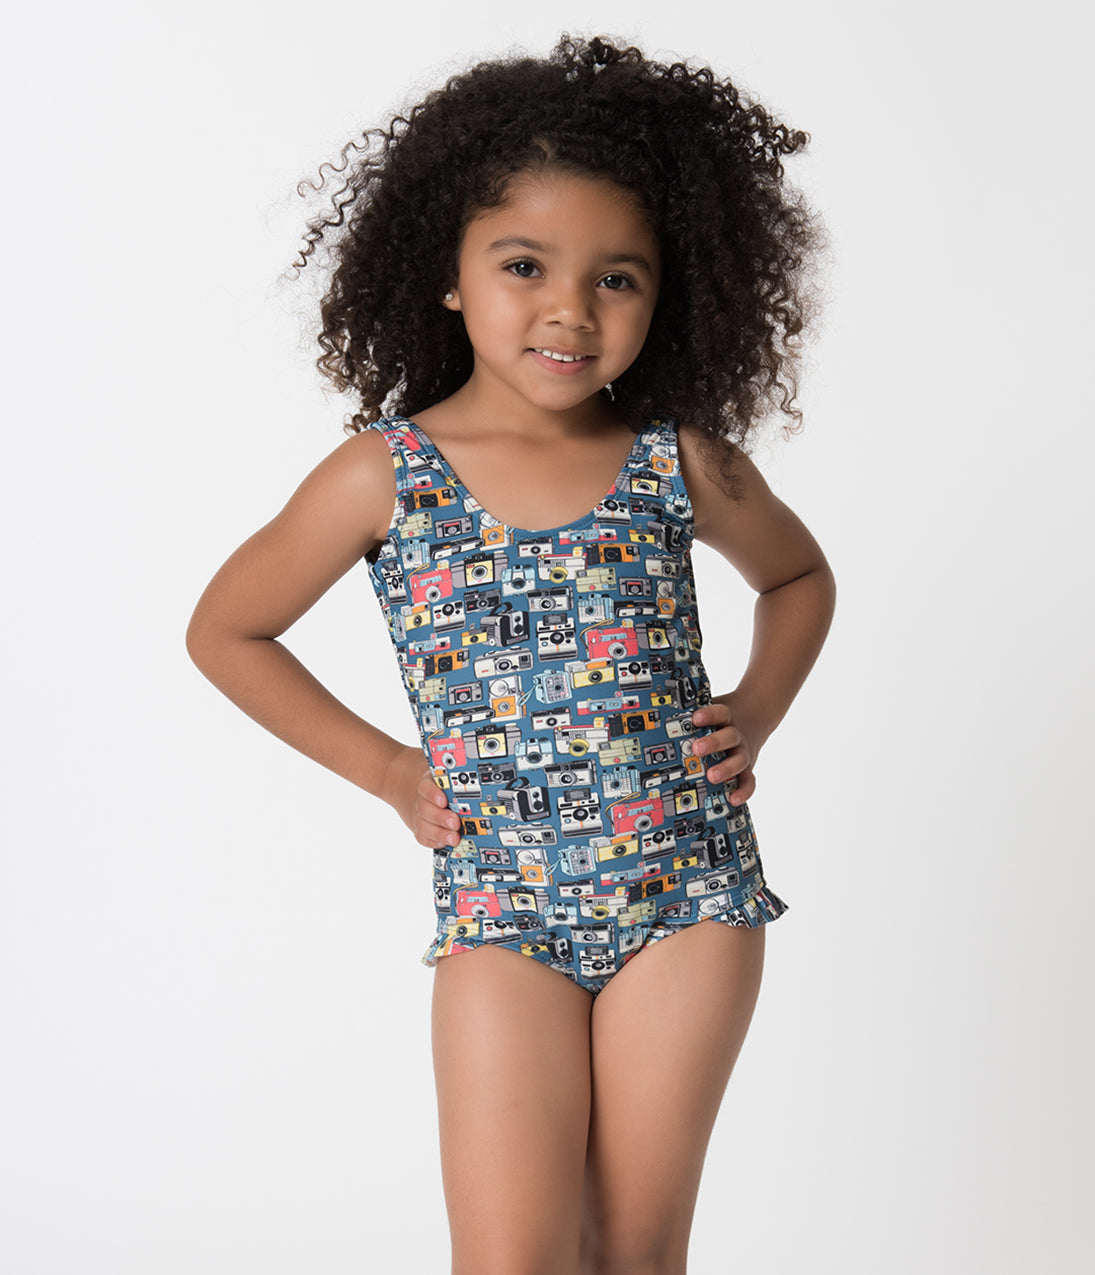 Retro Style Blue Vintage Camera Tank Style Kids One Piece Swimsuit With little cameras to capture the big picture, this one piece tank is perfect for your little superstar! The retro inspired swimwear is printed with a multicolored vintage camera design, keeping the past alive with just a snapshot. Small ruffles sit on the top of the low cut legs of this fully lined swimmer. Created from a stretch friendly fabric blend, your little one will be ready for her close up! ..Available in sizes 2-6 while supplies last. | Retro Style Blue Vintage Camera Tank Style Kids One Piece Swimsuit